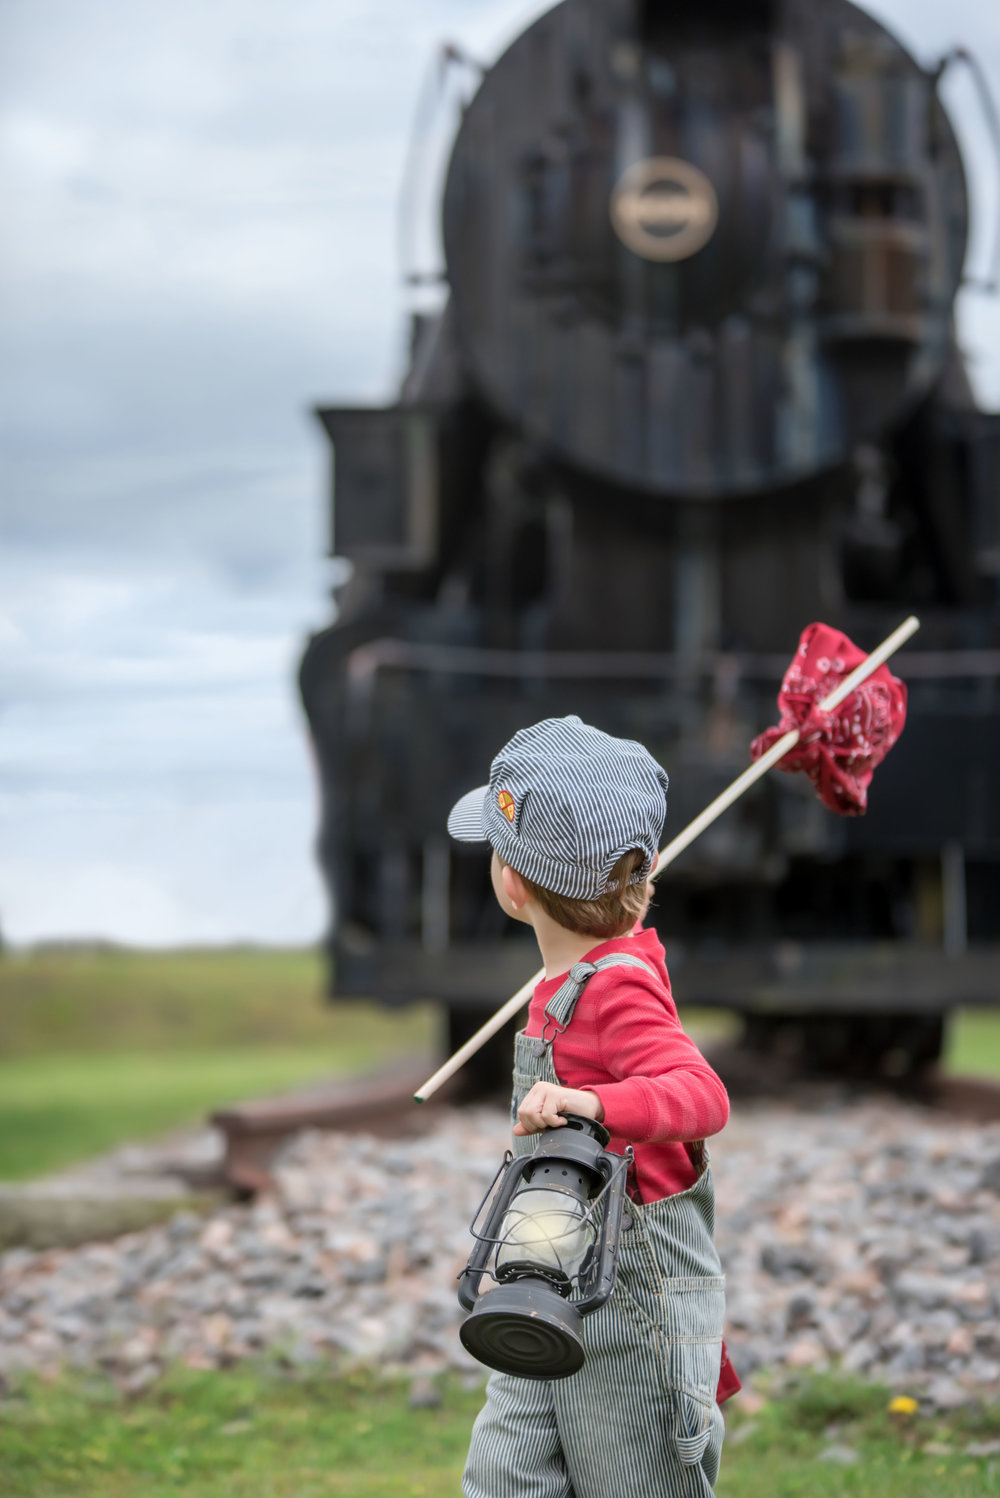 3 year old little boy in train conductor engineer outfit with lantern and hobo stick